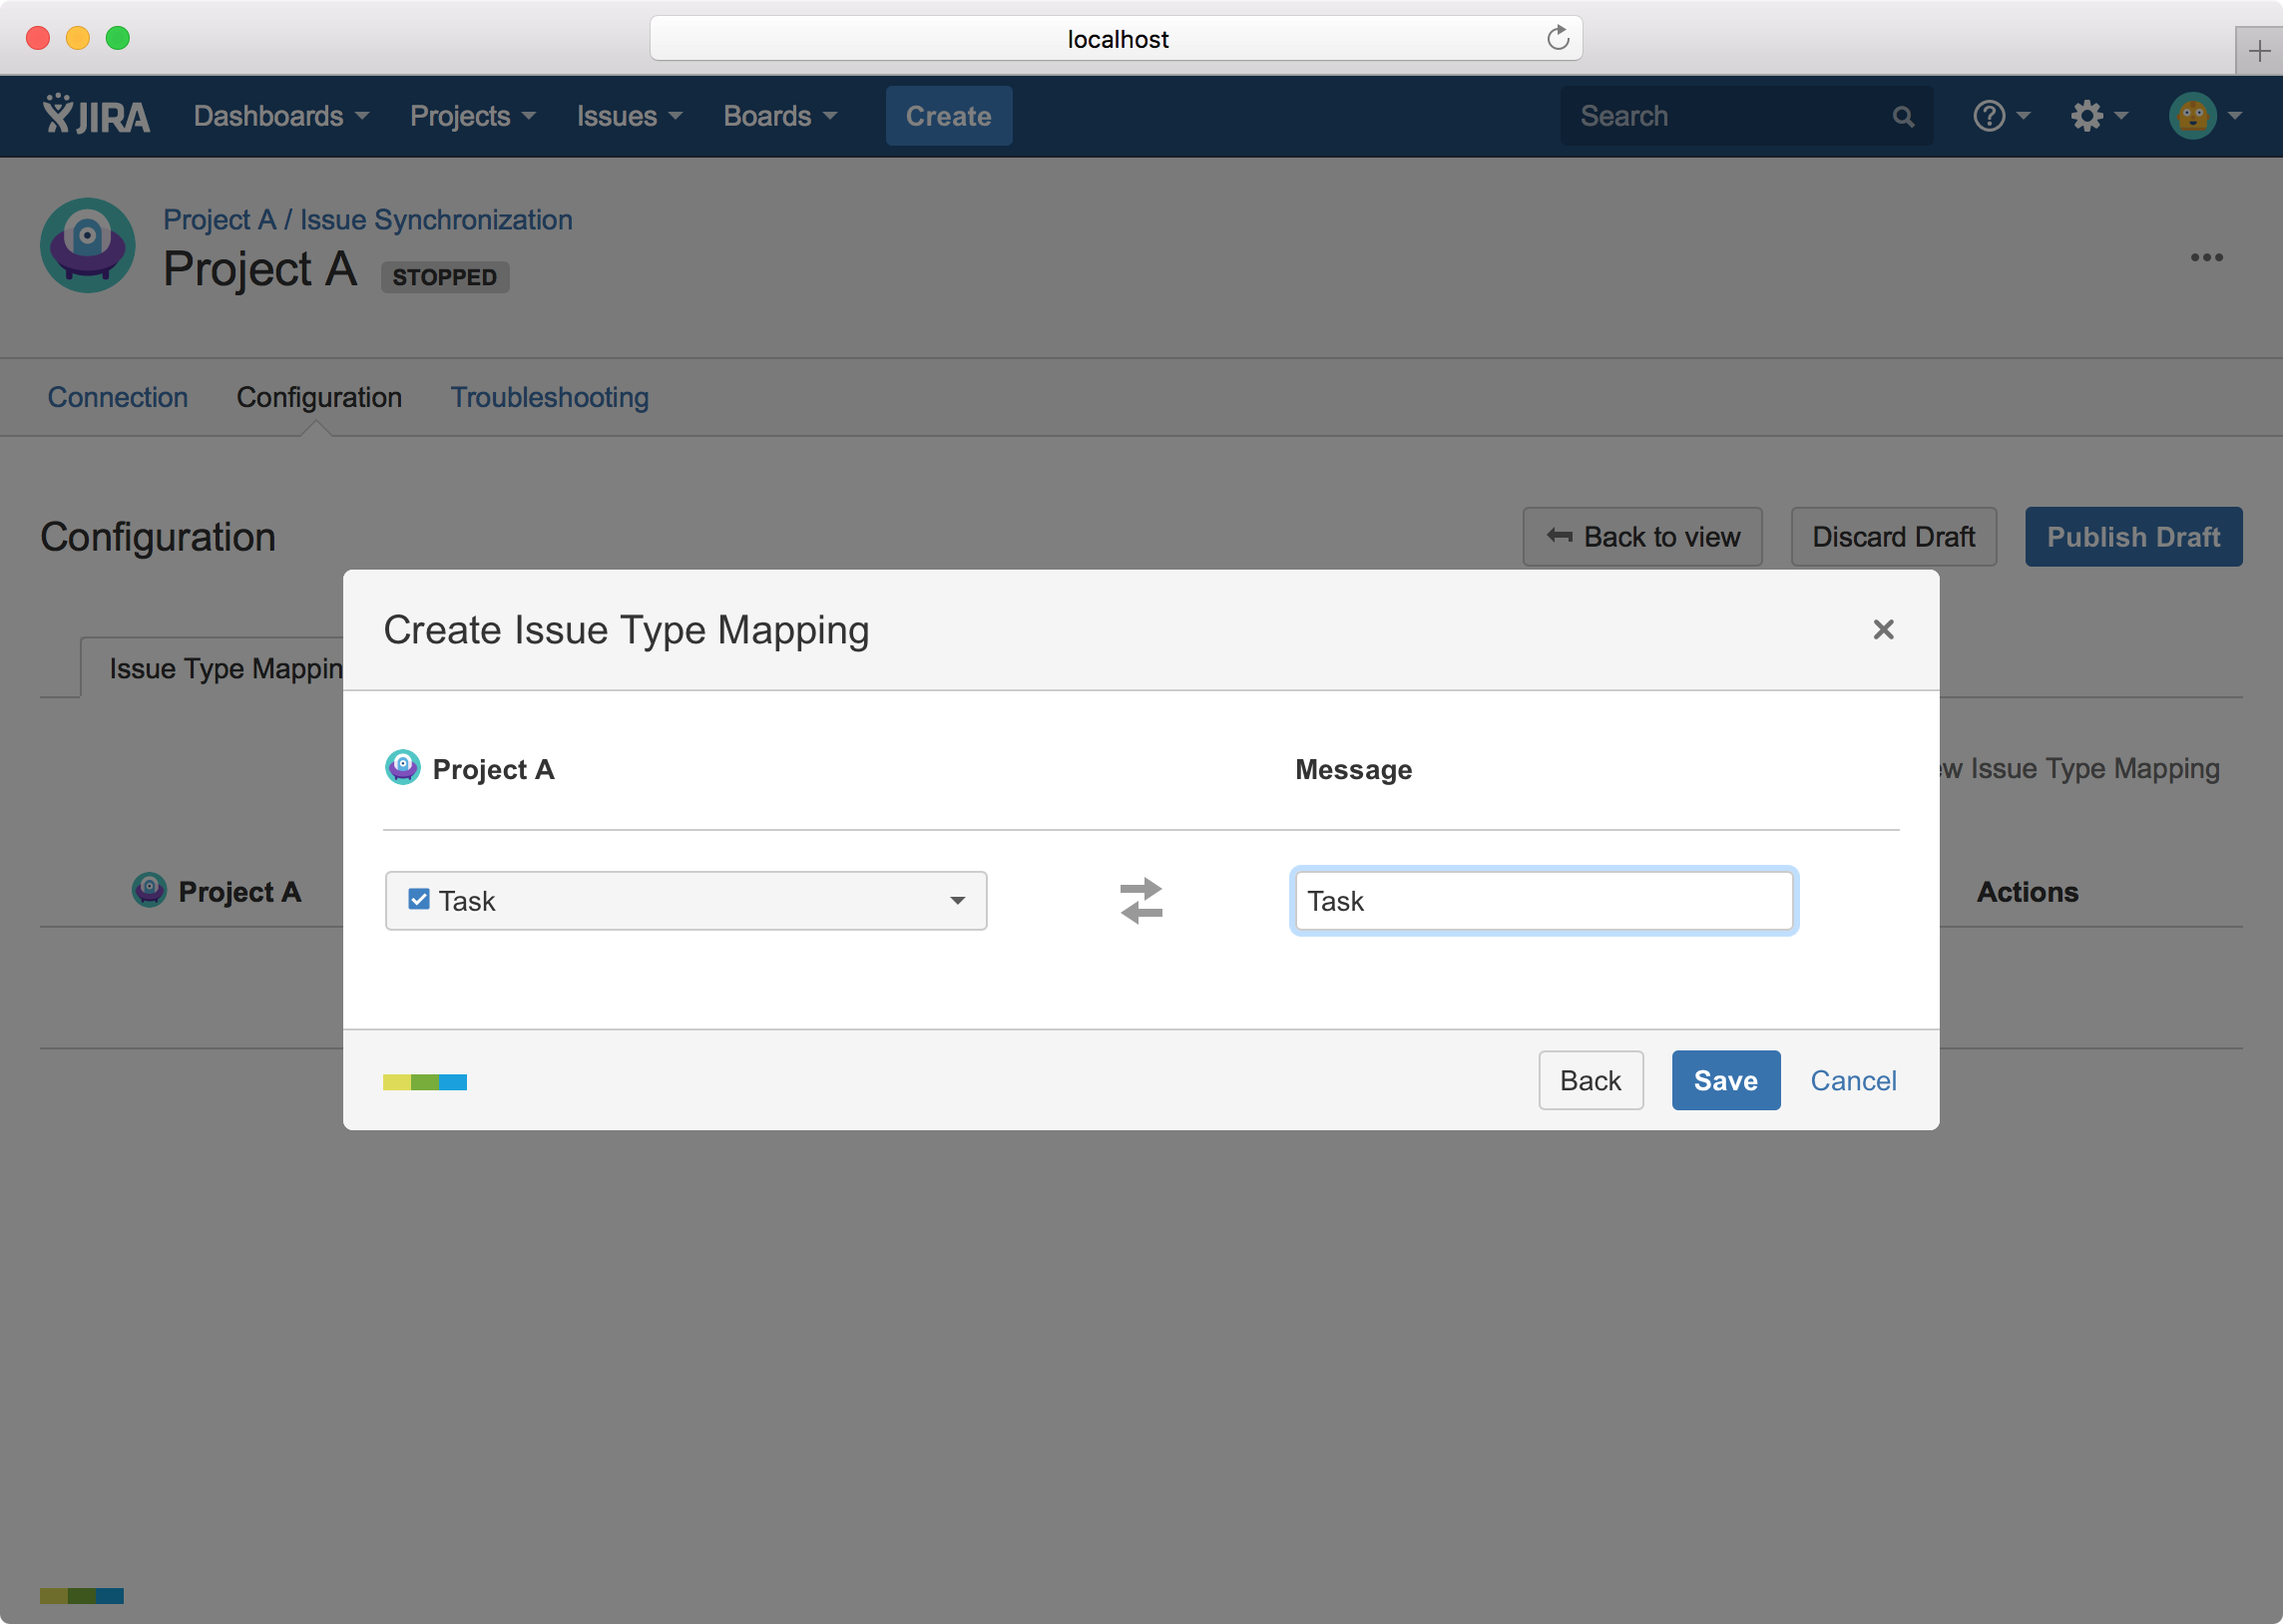 backbone-issue-sync-jira-3.0-issue-mapping